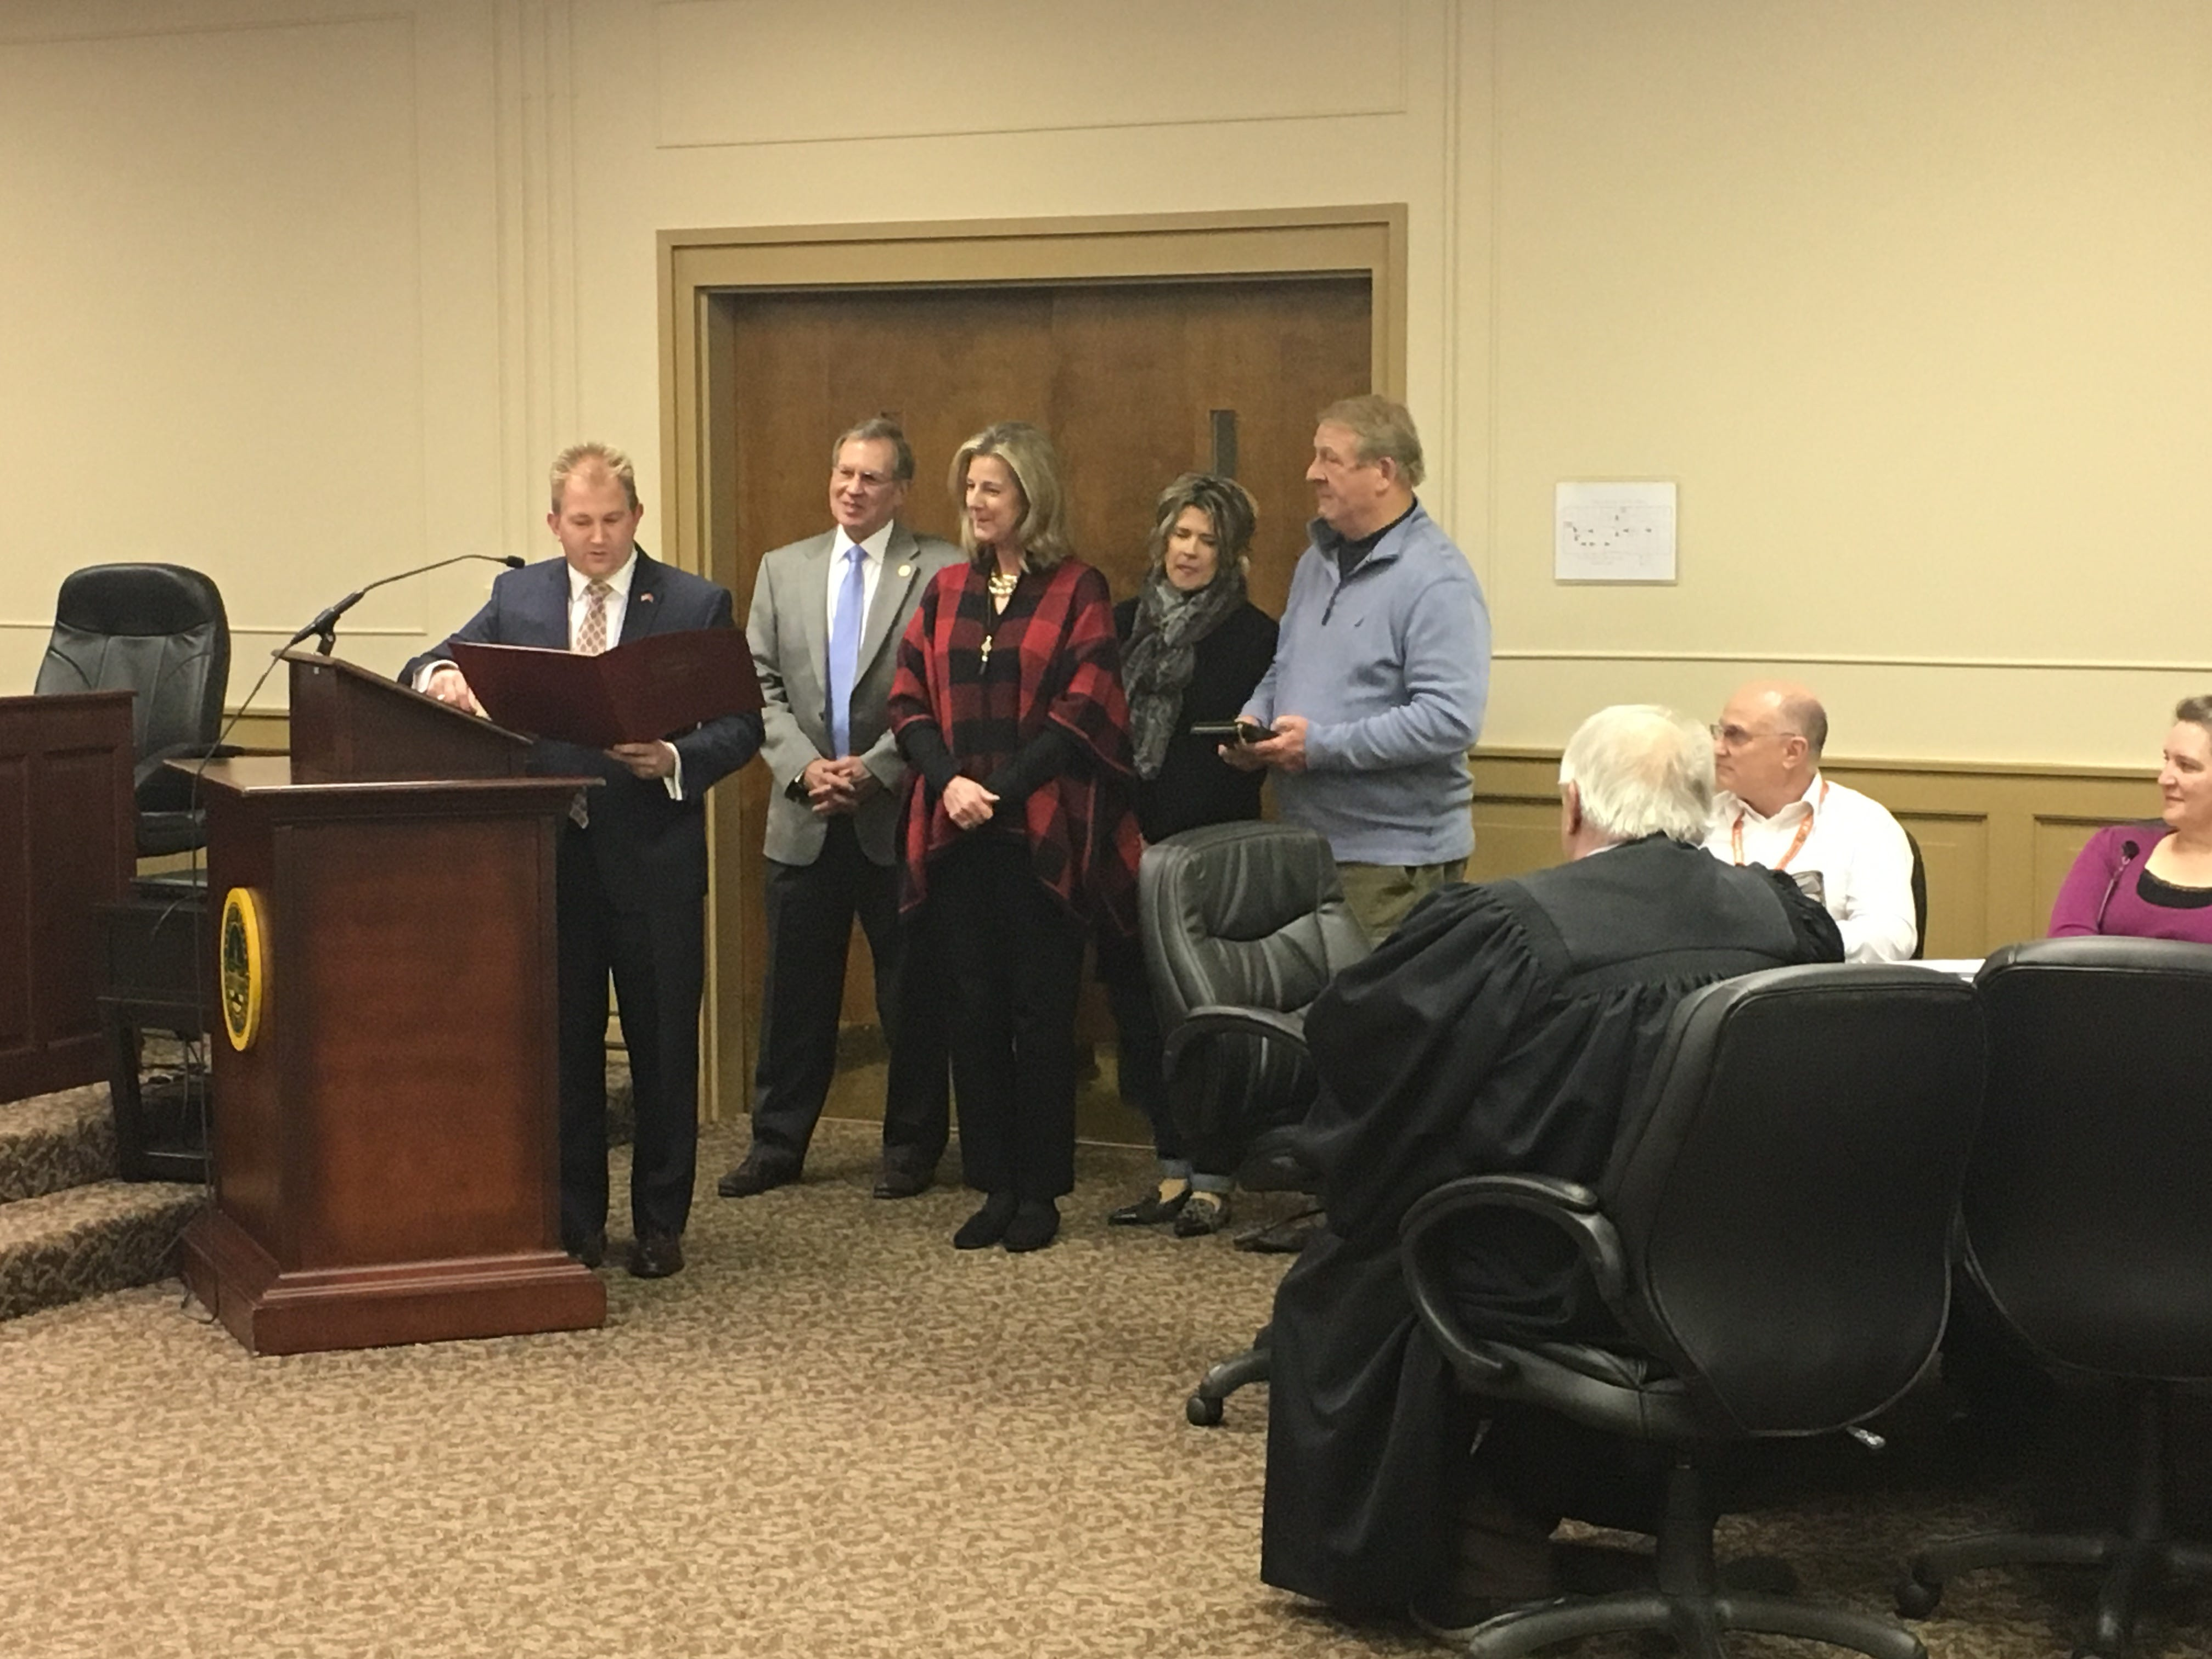 Re-elected City Recorder Connie Kittrell was sworn in Jan. 15, 2019. She was also recognized by Rep. William Lanberth for her work with the city, including being named Judge of the Year in 2018 at the Tennessee Municipal Judges Conference.